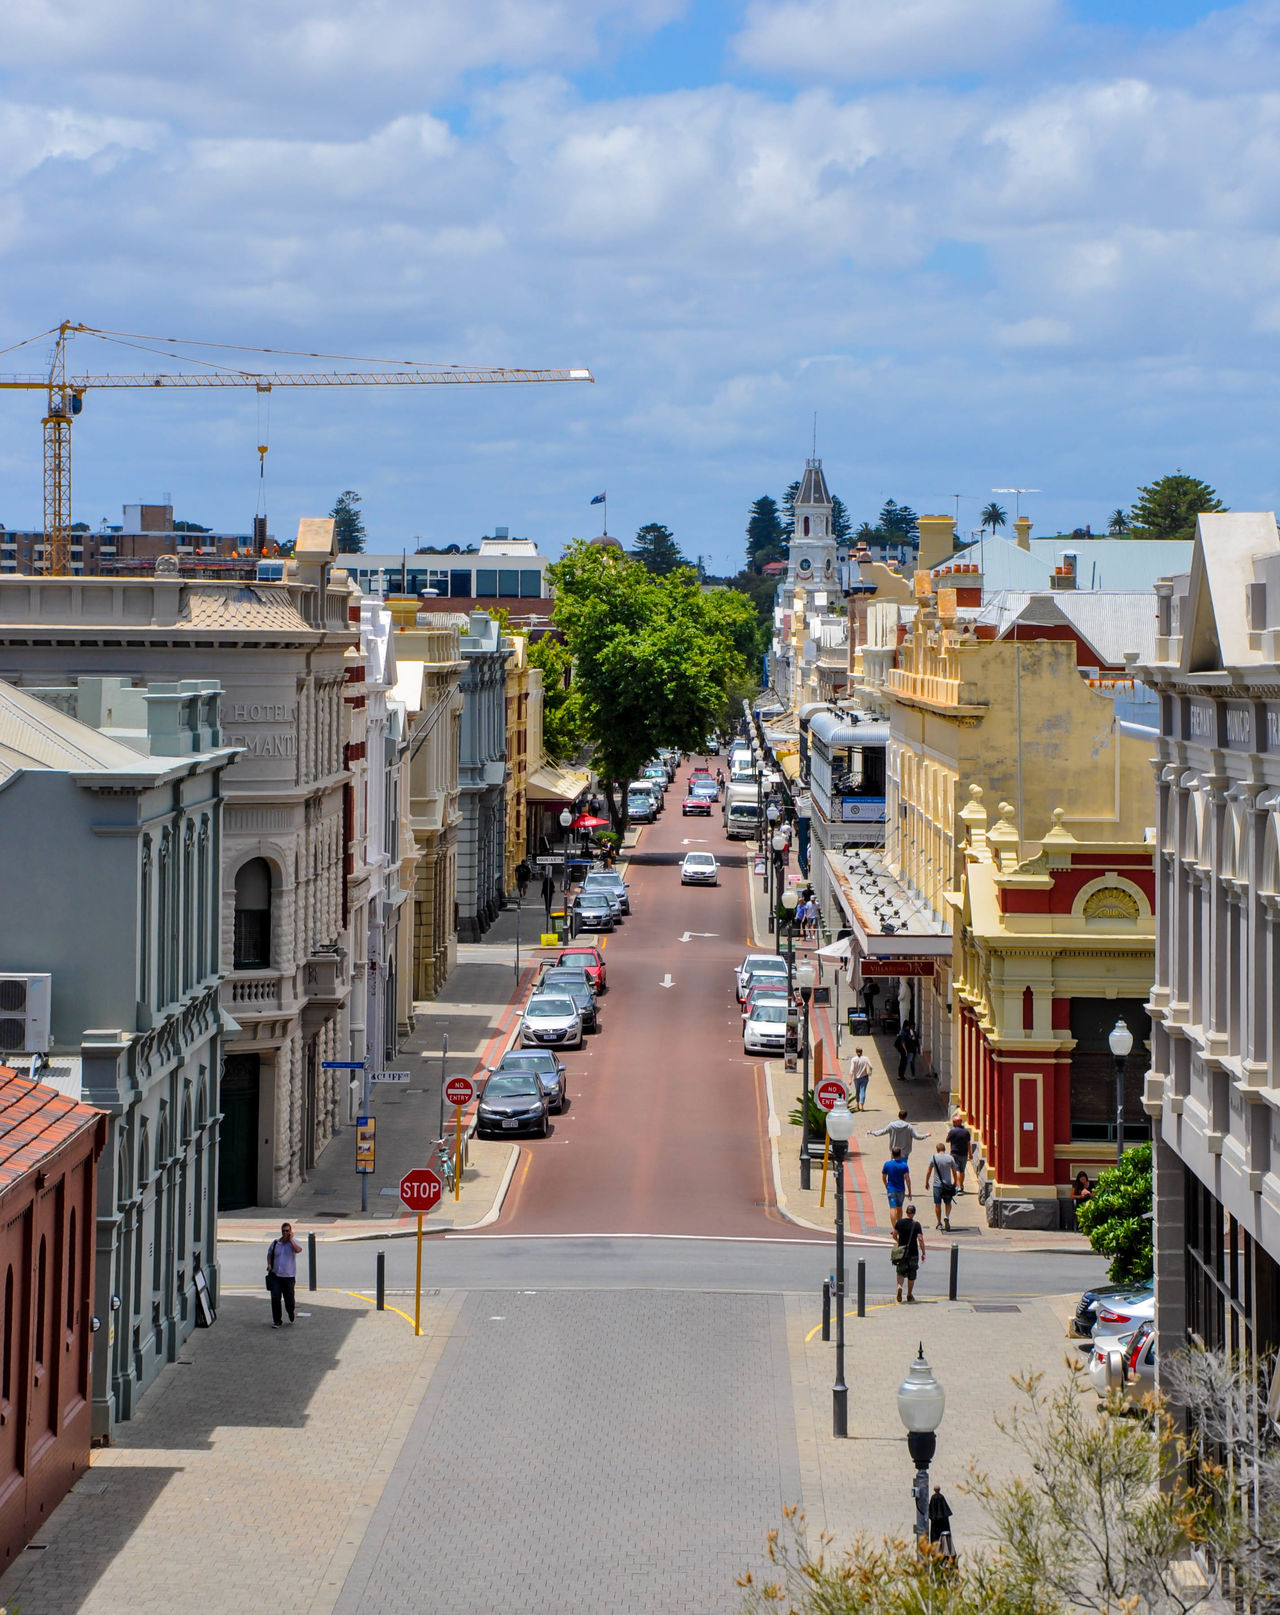 Elevated view overlooking High Street with building facades and tourists in the travel destination and historic town of Fremantle, Western Australia. Architecture Building Building Exterior Built Structure Car City City Life Cloud - Sky Development Diminishing Perspective Downtown Elevated View Facades Fremantle, Western Australia High Angle View High Street Historic Incidental People Mode Of Transport Sky Street The Way Forward Tourists Travel Destinations Vanishing Point